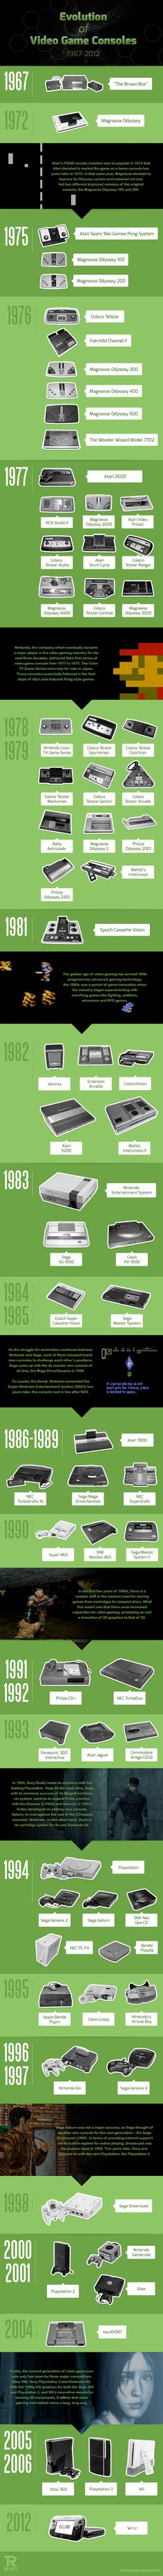 Evolution of Video Game Consoles [infographic]1967-2012